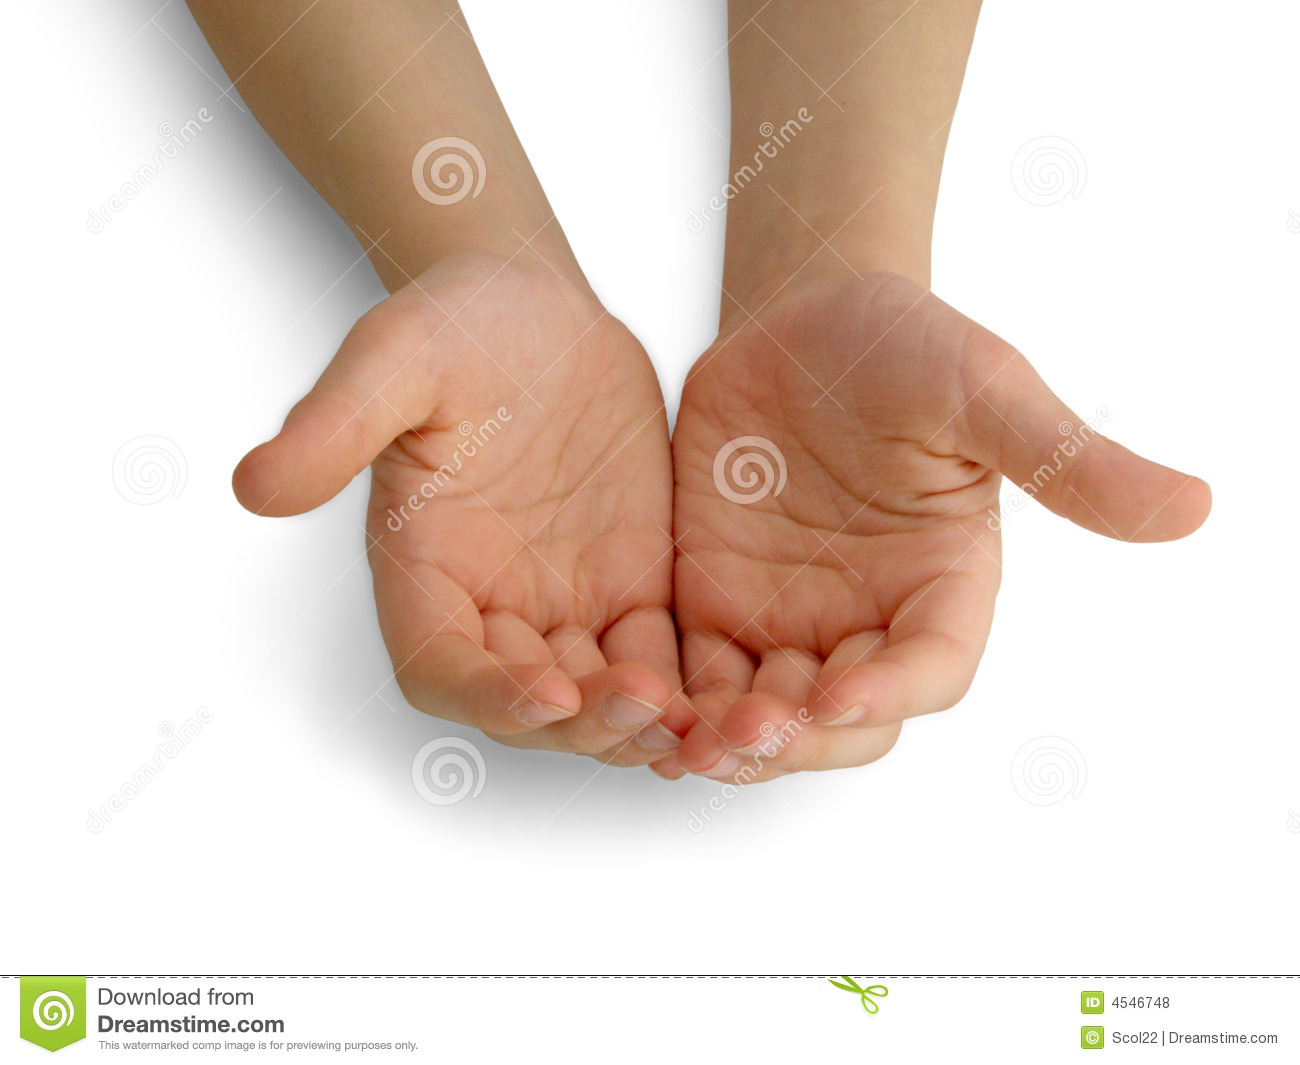 Child S Hands Holding Offering Giving Something Or Asking Begging For